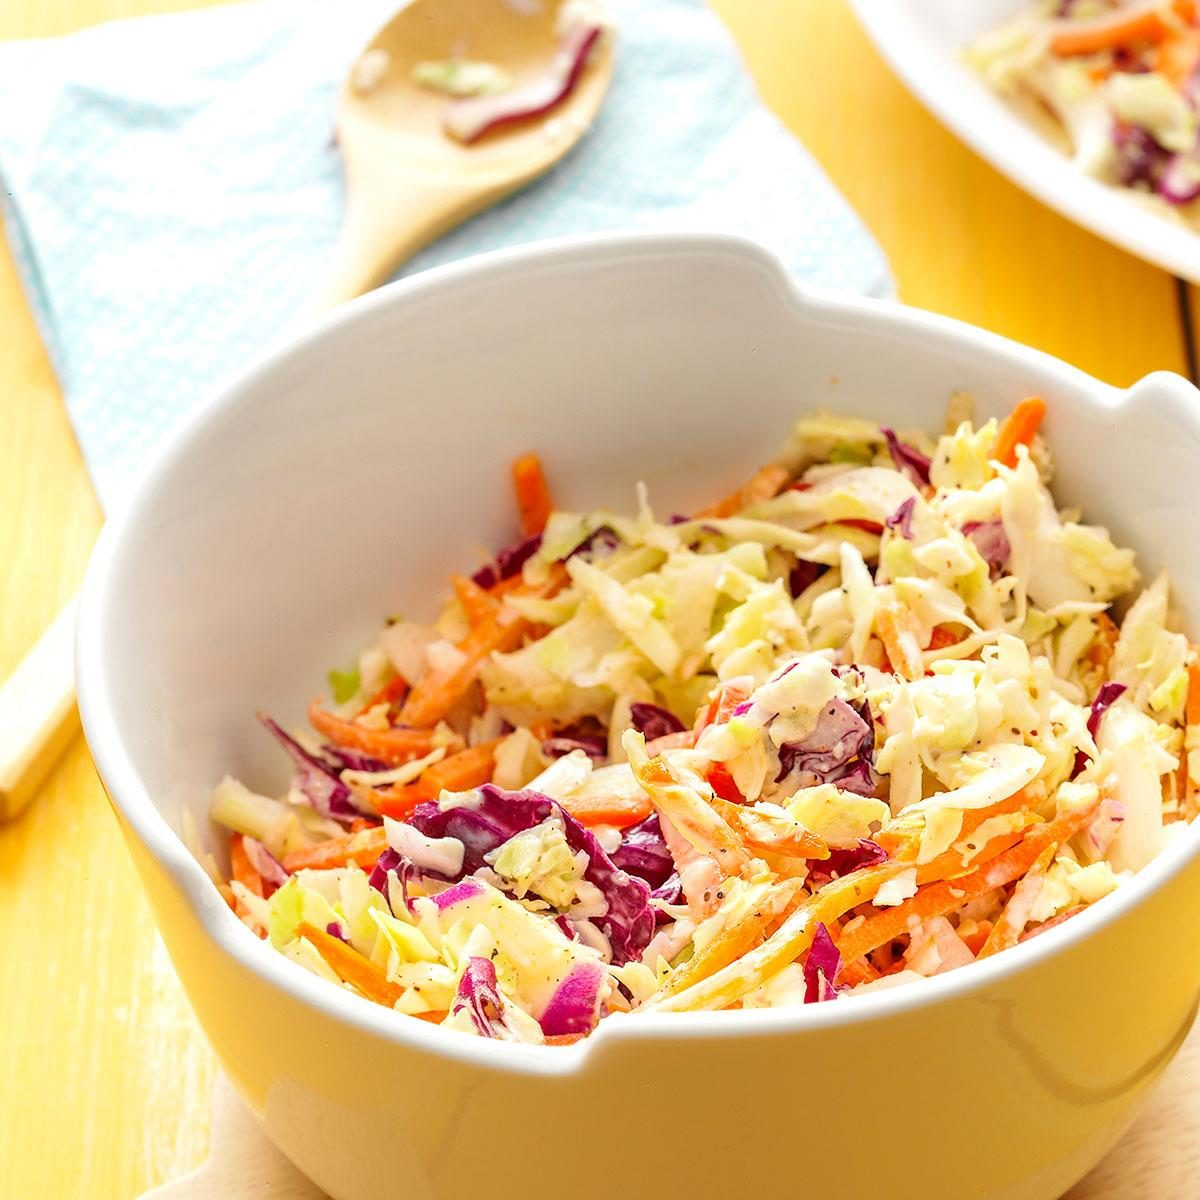 Zesty Coleslaw Recipe